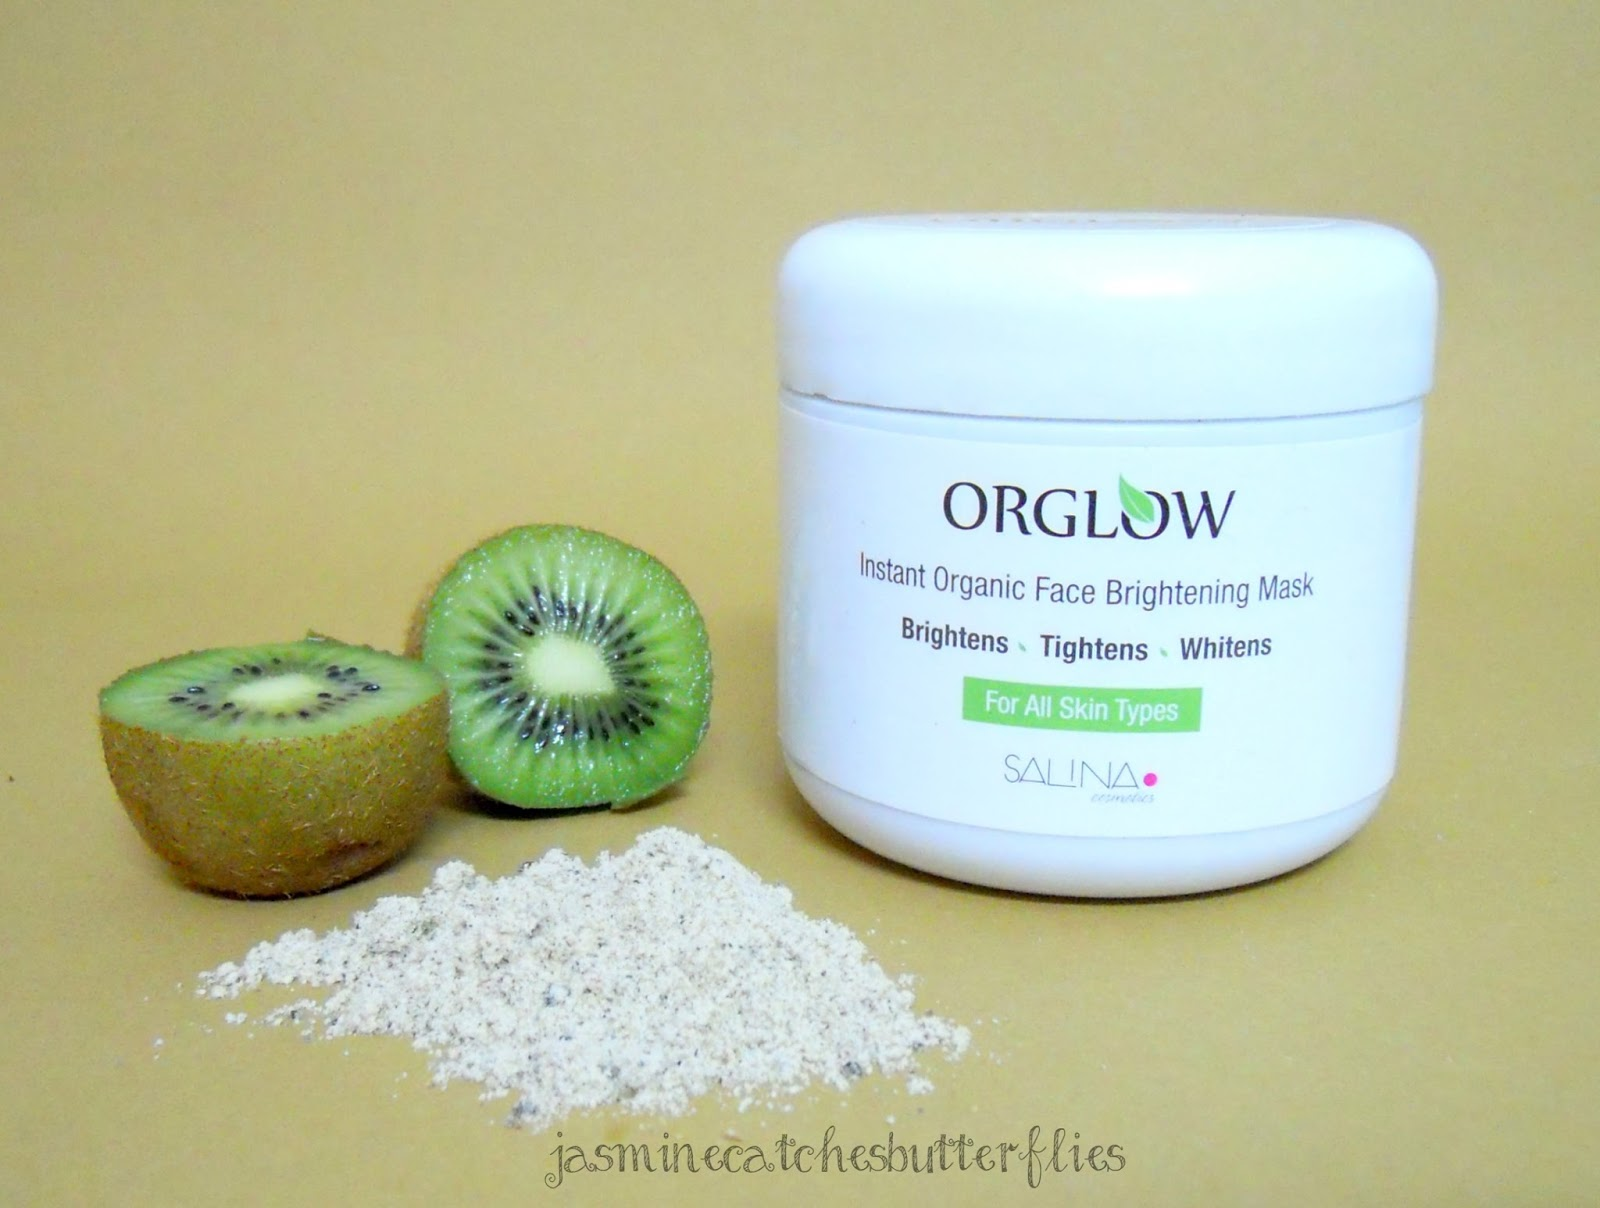 Orglow Mask Review